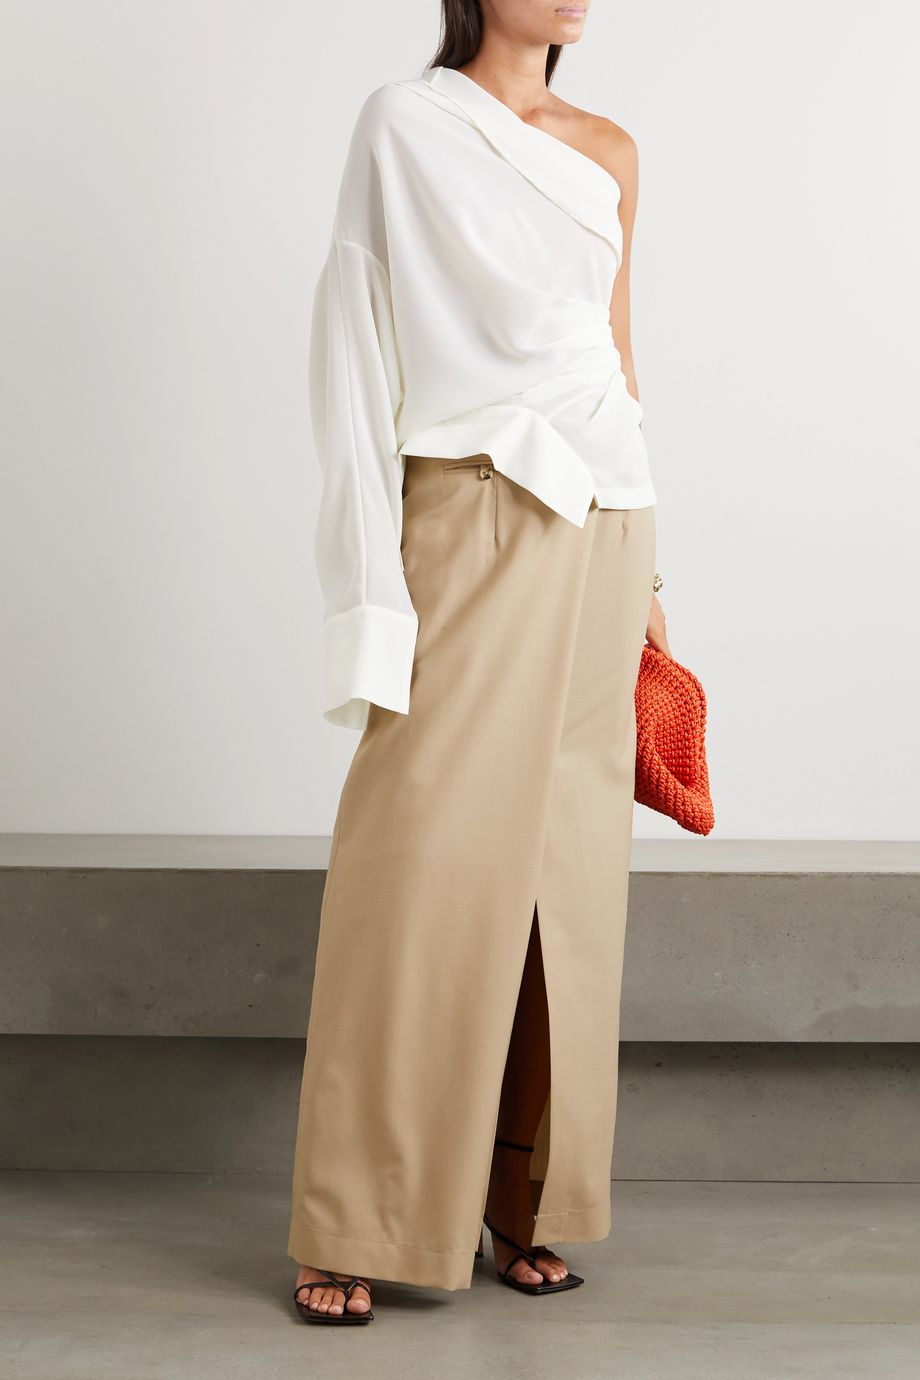 A.W.A.K.E. MODE One-shoulder draped chiffon blouse